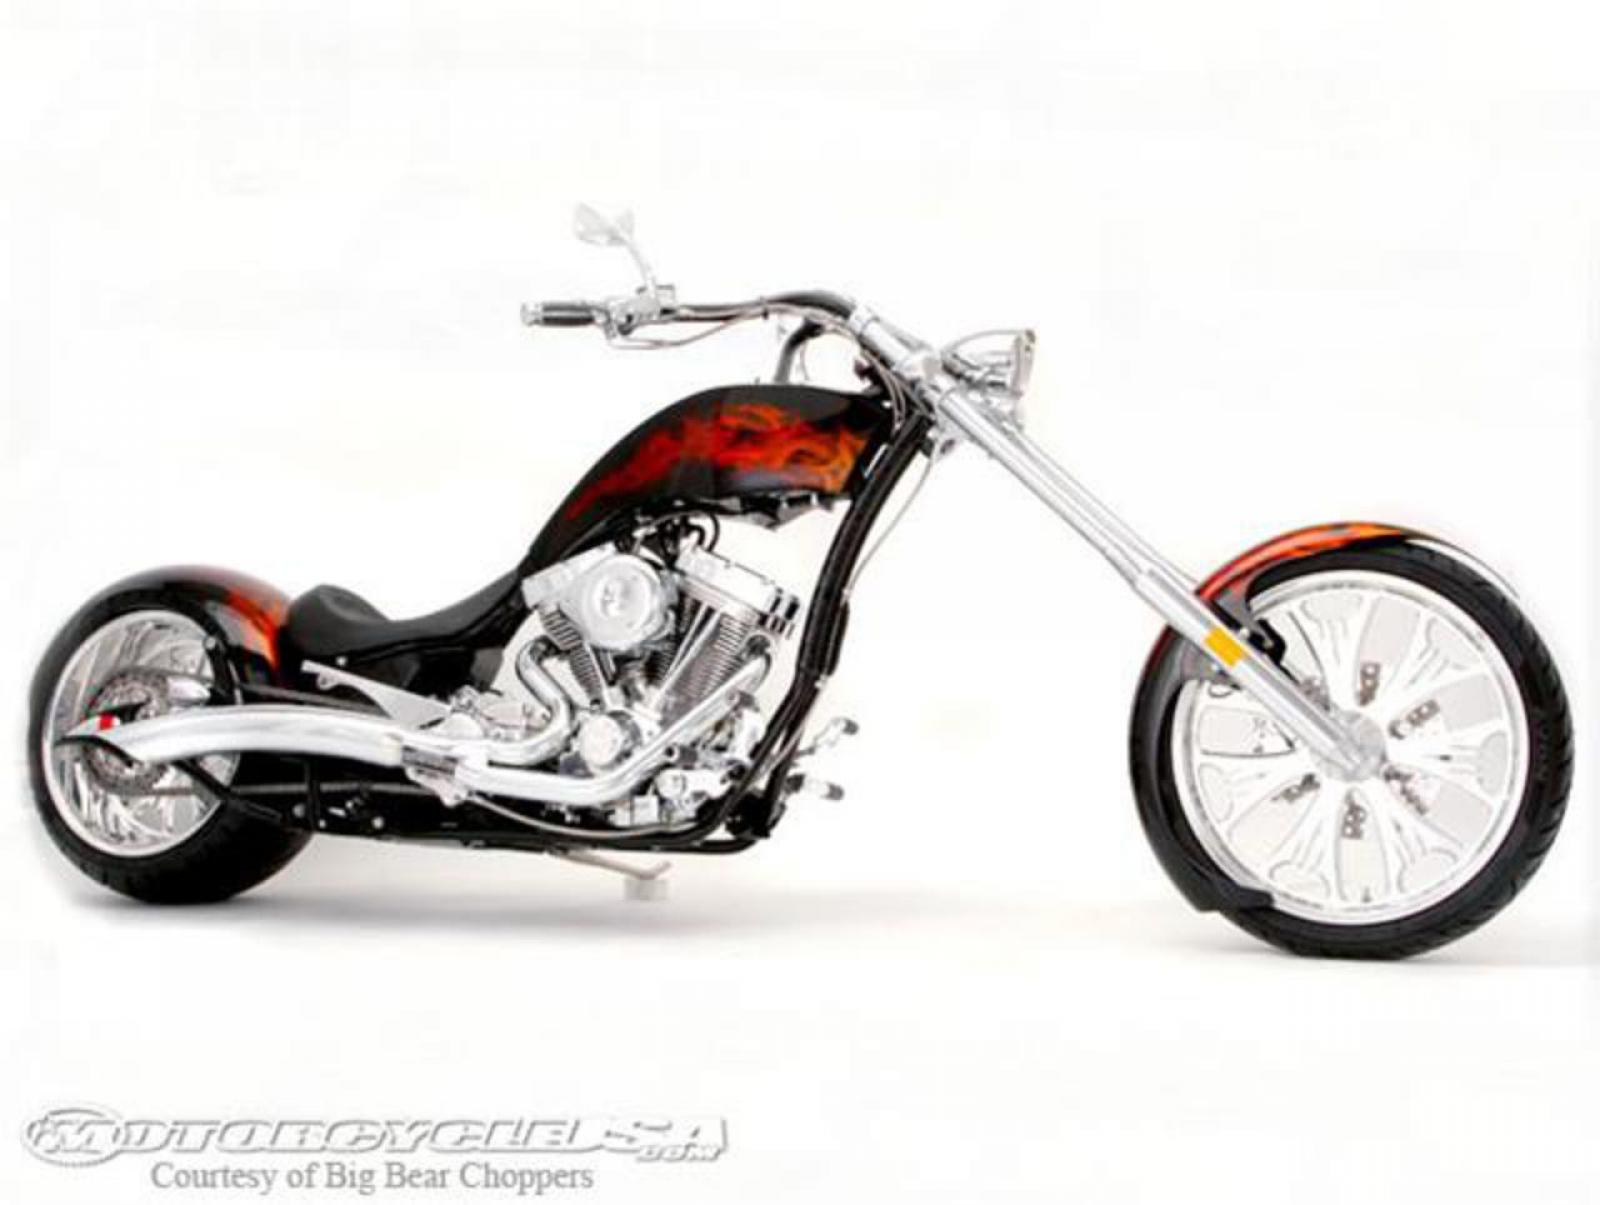 Big Bear Choppers Venom 100 Smooth EFI 2010 images #63835